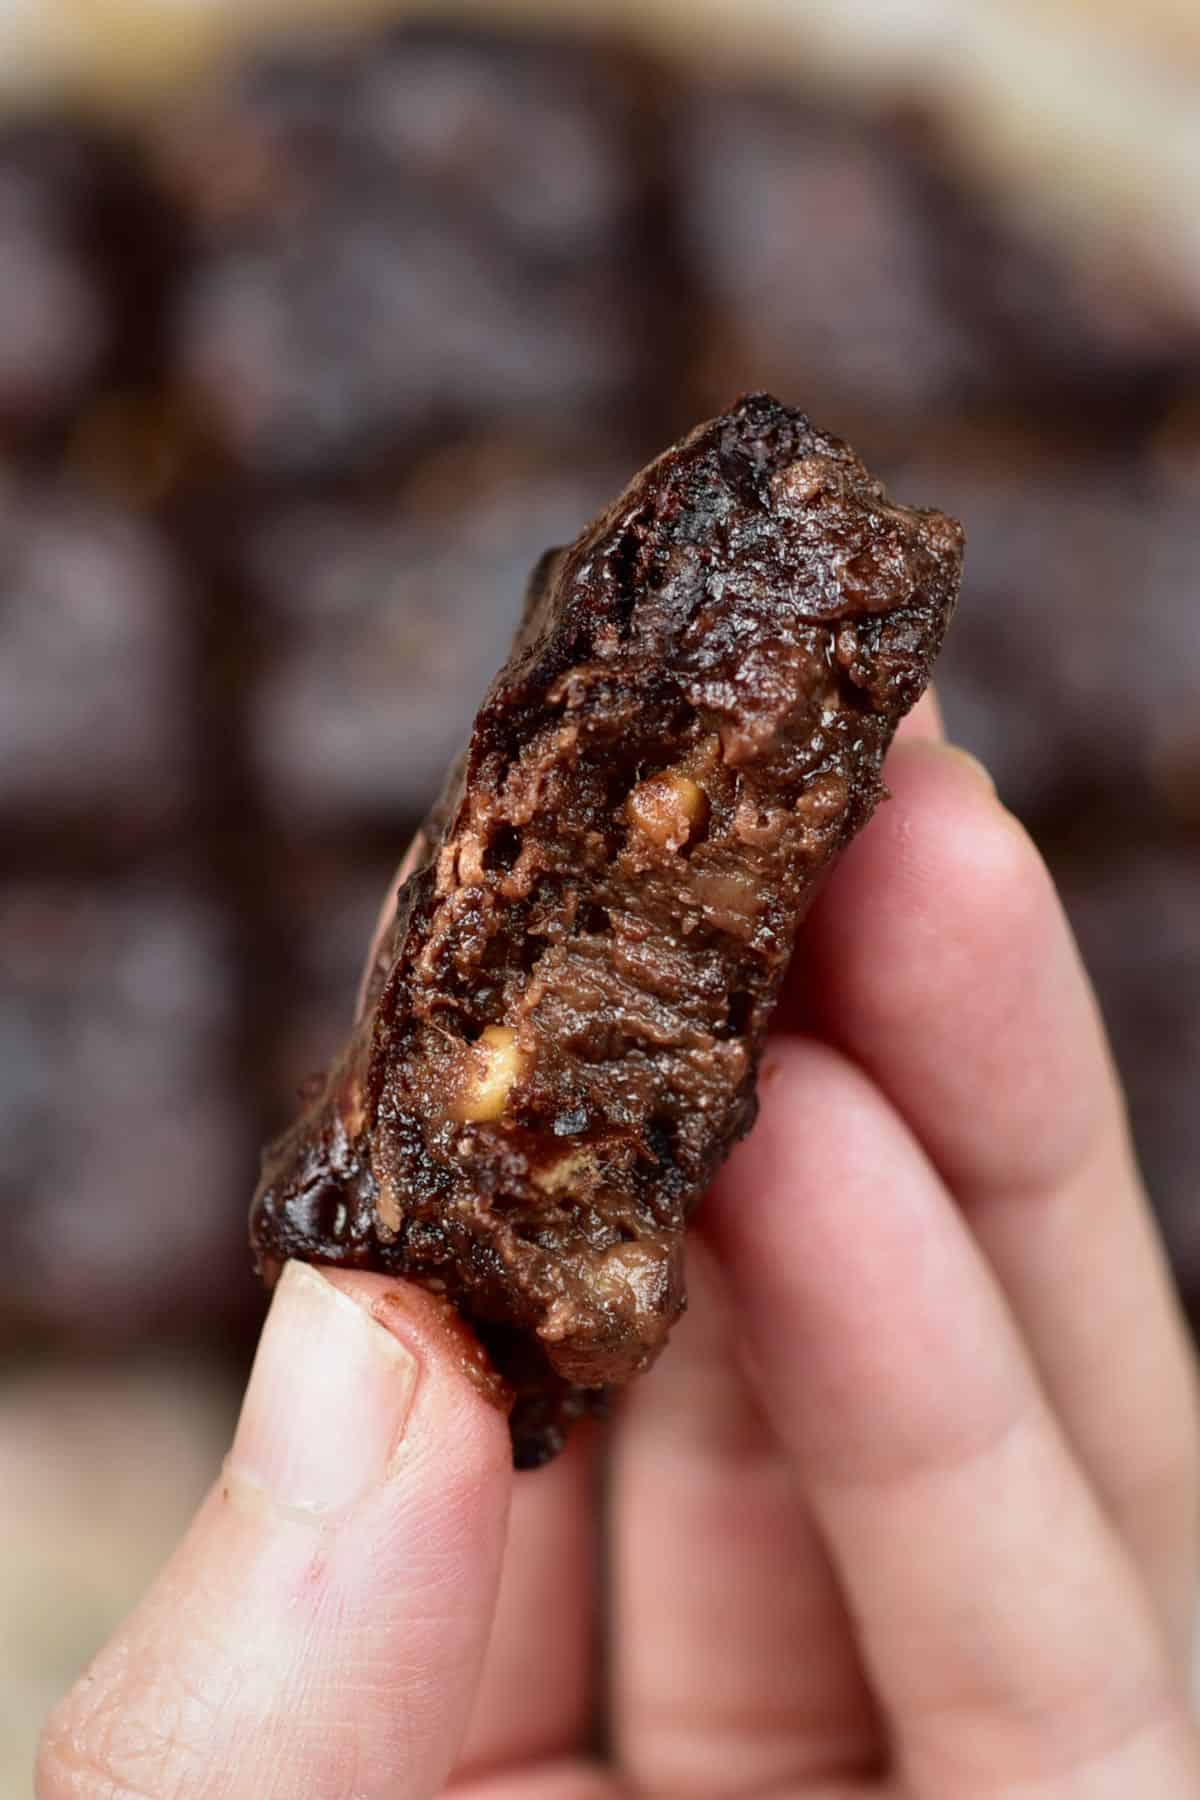 A close up of banana brownies held in a hand